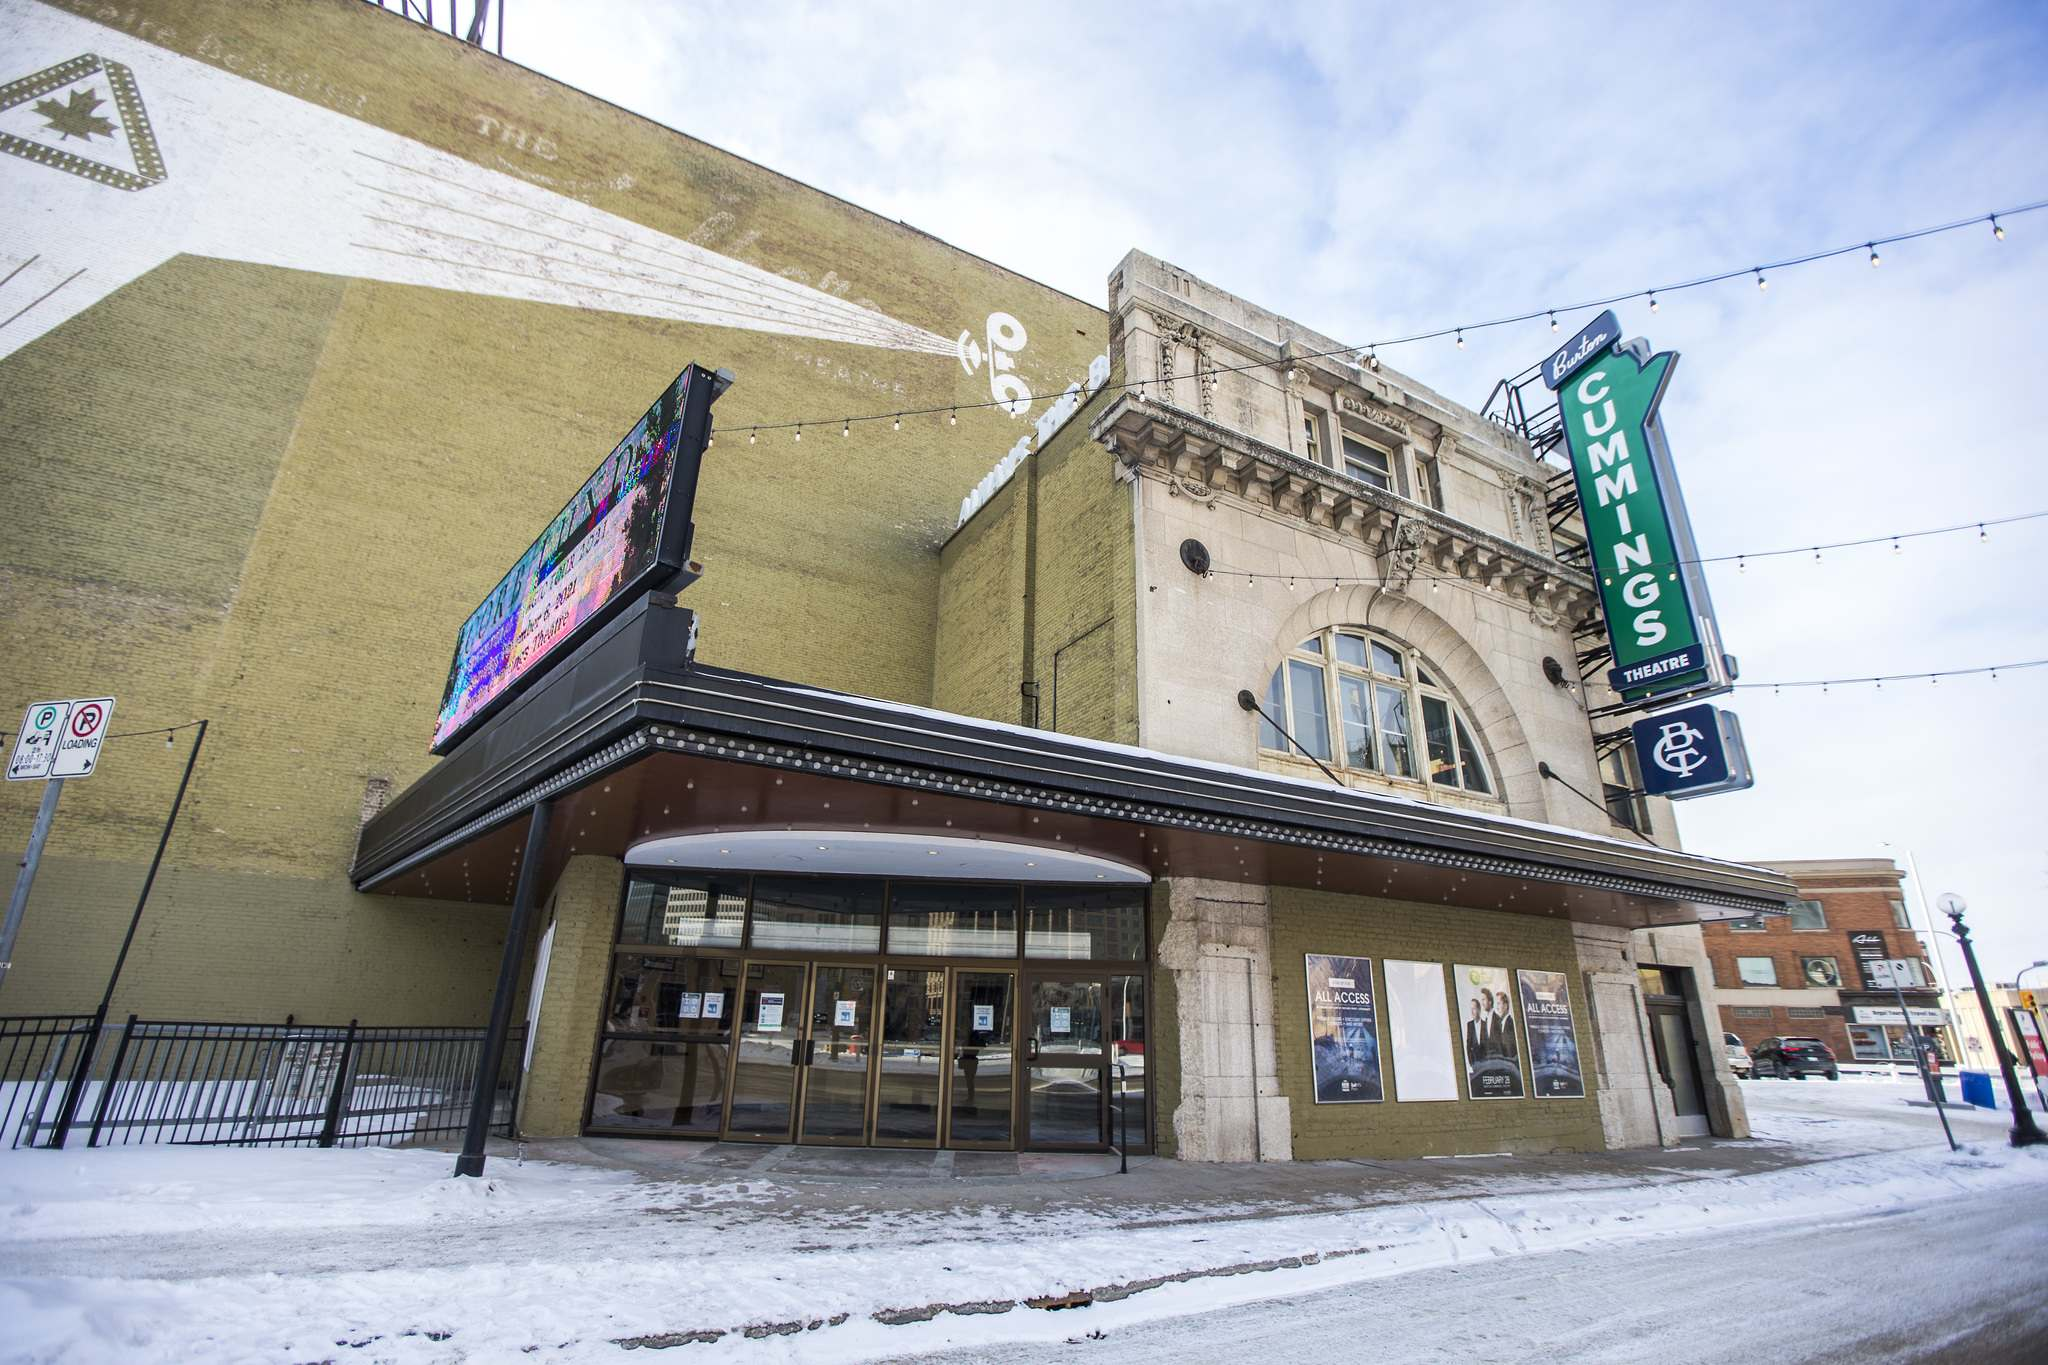 The historic theatre continues to impress performers and audience members with its elaborate gilt, marble and plaster finishes, good sightlines and great acoustics. (Mikaela MacKenzie / Winnipeg Free Press)</p>